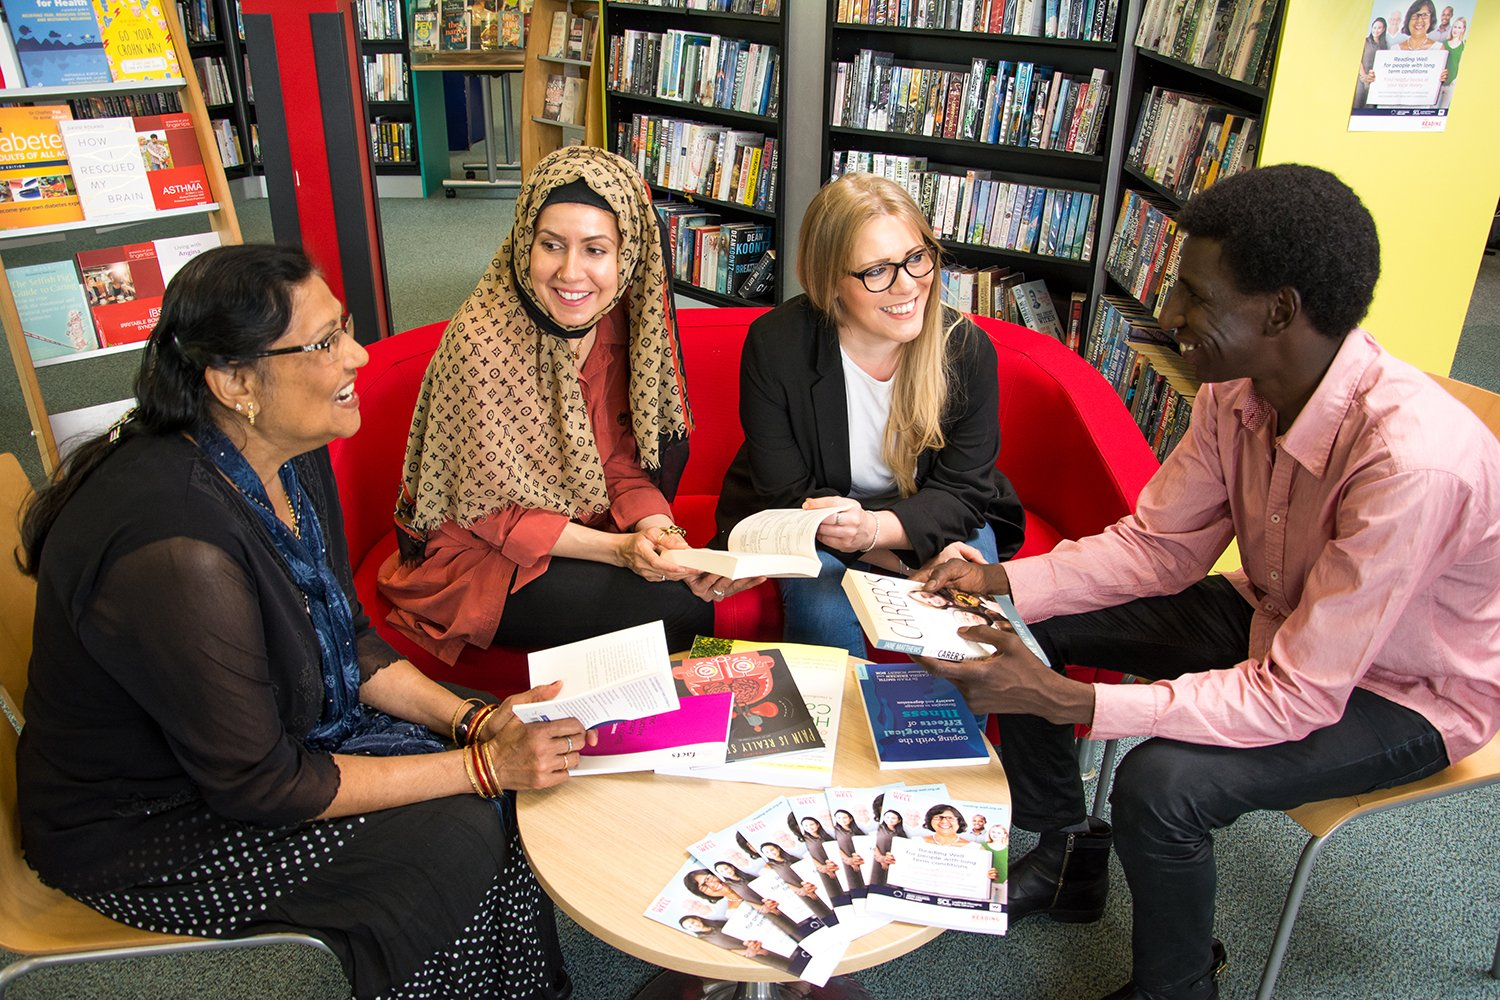 Today we're delighted to launch #ReadingWell for long term conditions, available at public libraries across England https://t.co/v7Vz3LnRDQ https://t.co/1fHC2Sqnk5